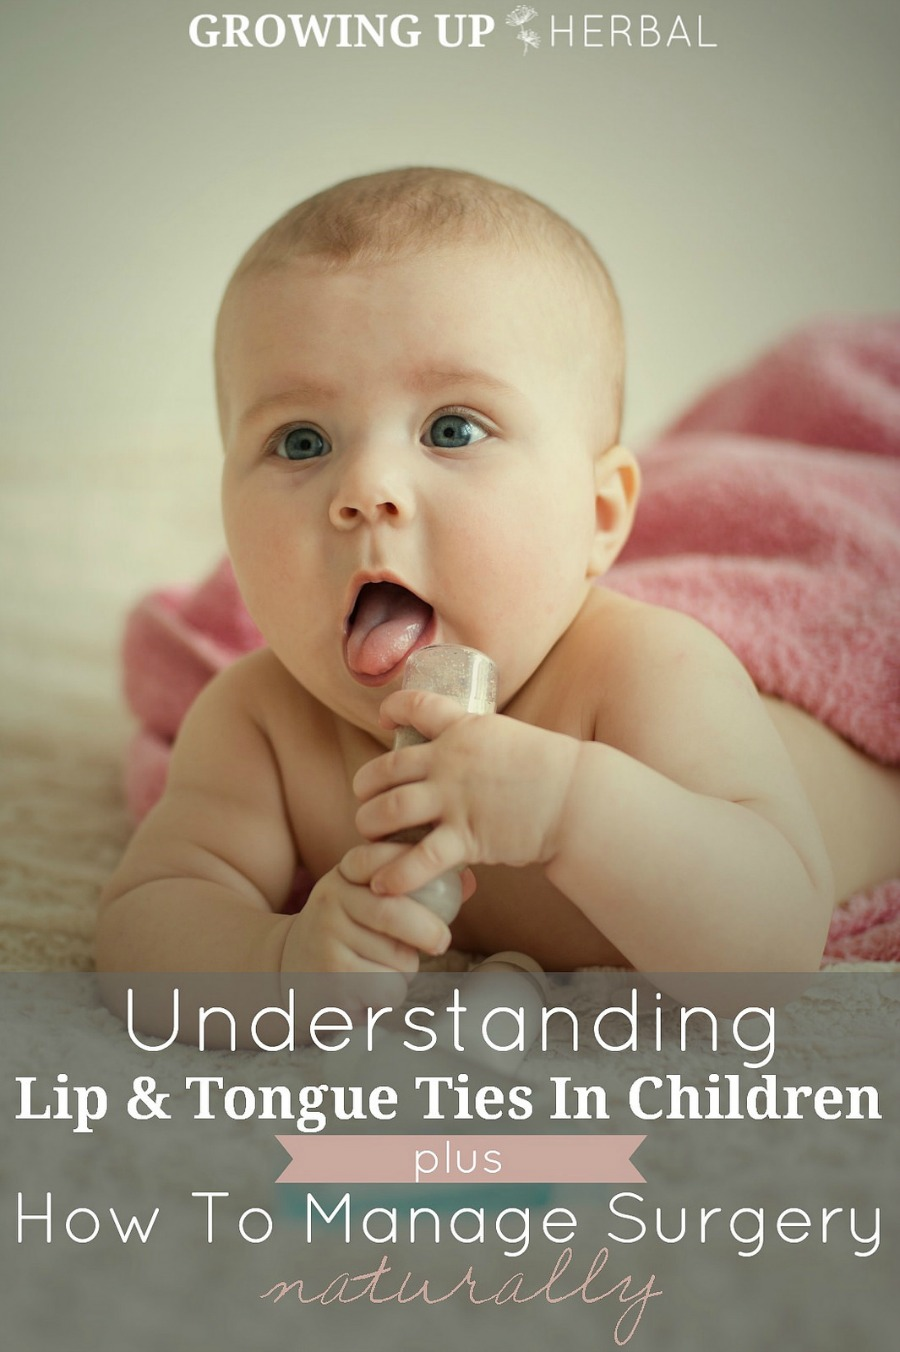 Understanding Lip & Tongue Ties In Children + How To Manage Surgery Naturally | GrowingUpHerbal.com | Info on lip and tongue ties in children + natural remedies to help after surgery.